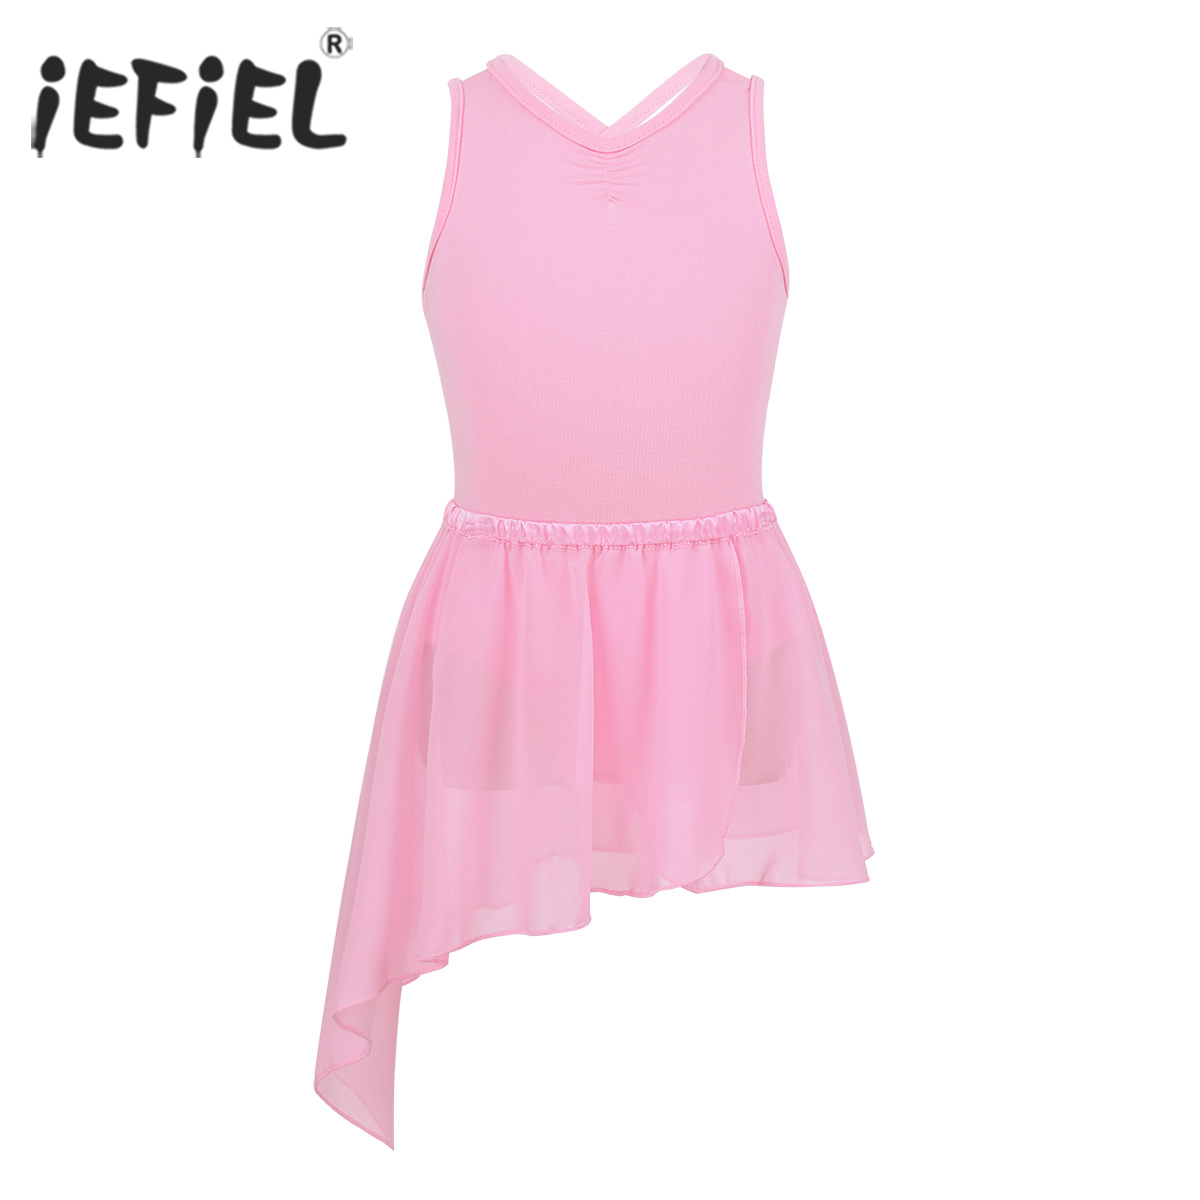 Kids Girls Sleeveless Ballerina Tutu Dancewear Criss-cross Back Ballet Dancing Class Gymnastics Leotard with Chiffon Skirt